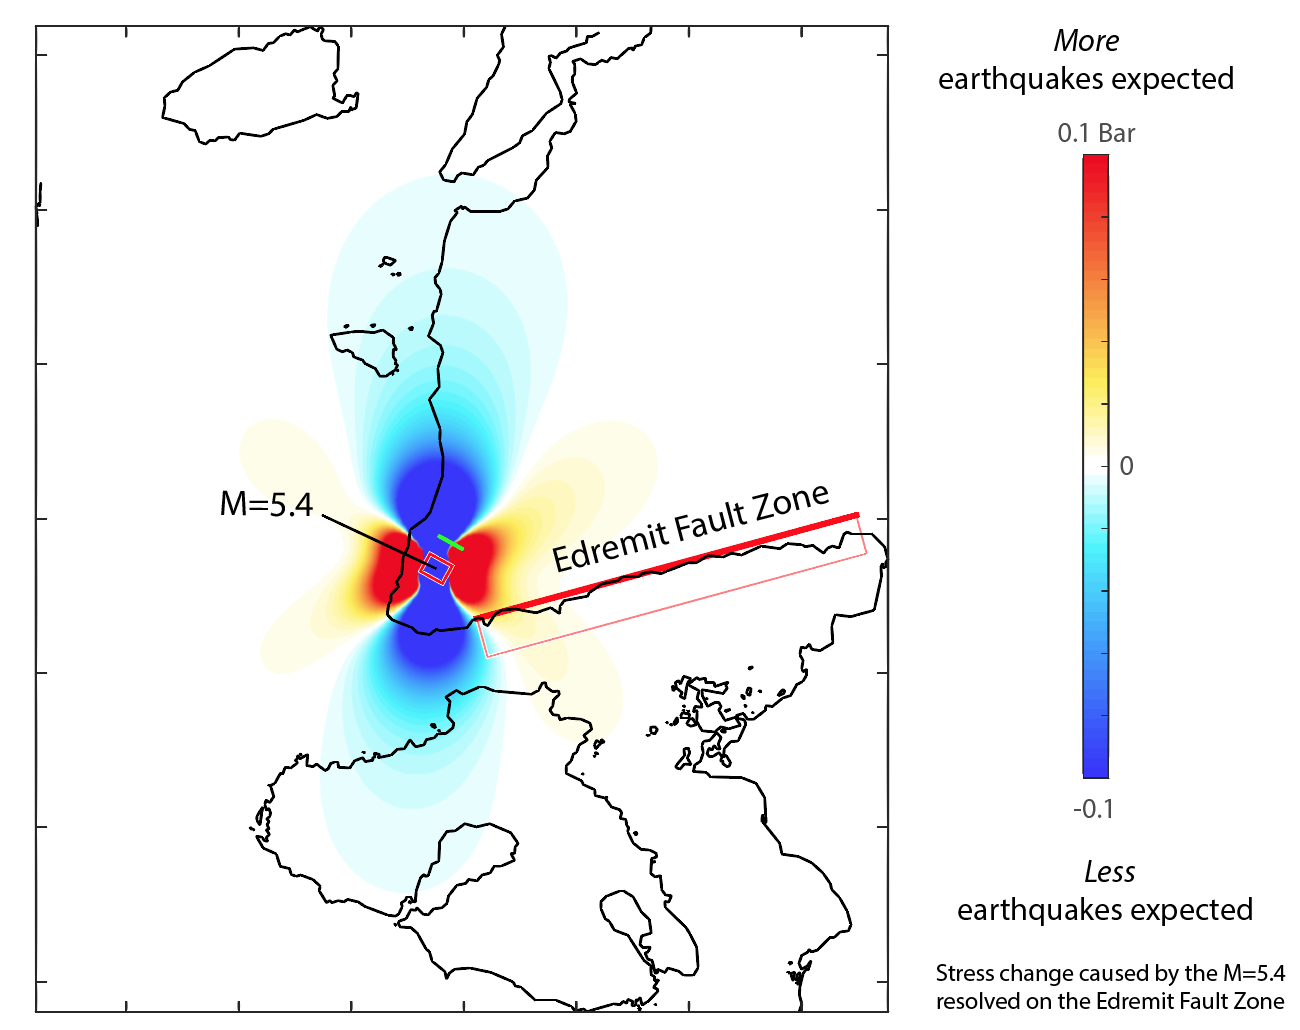 Coulomb Map showing stress increase on the Edremit Fault Zone. The map was created in Coulomb 3. Edremit fault: Dip: 60, Rake:-90, Depth: 7.00 km, Friction: 0.4